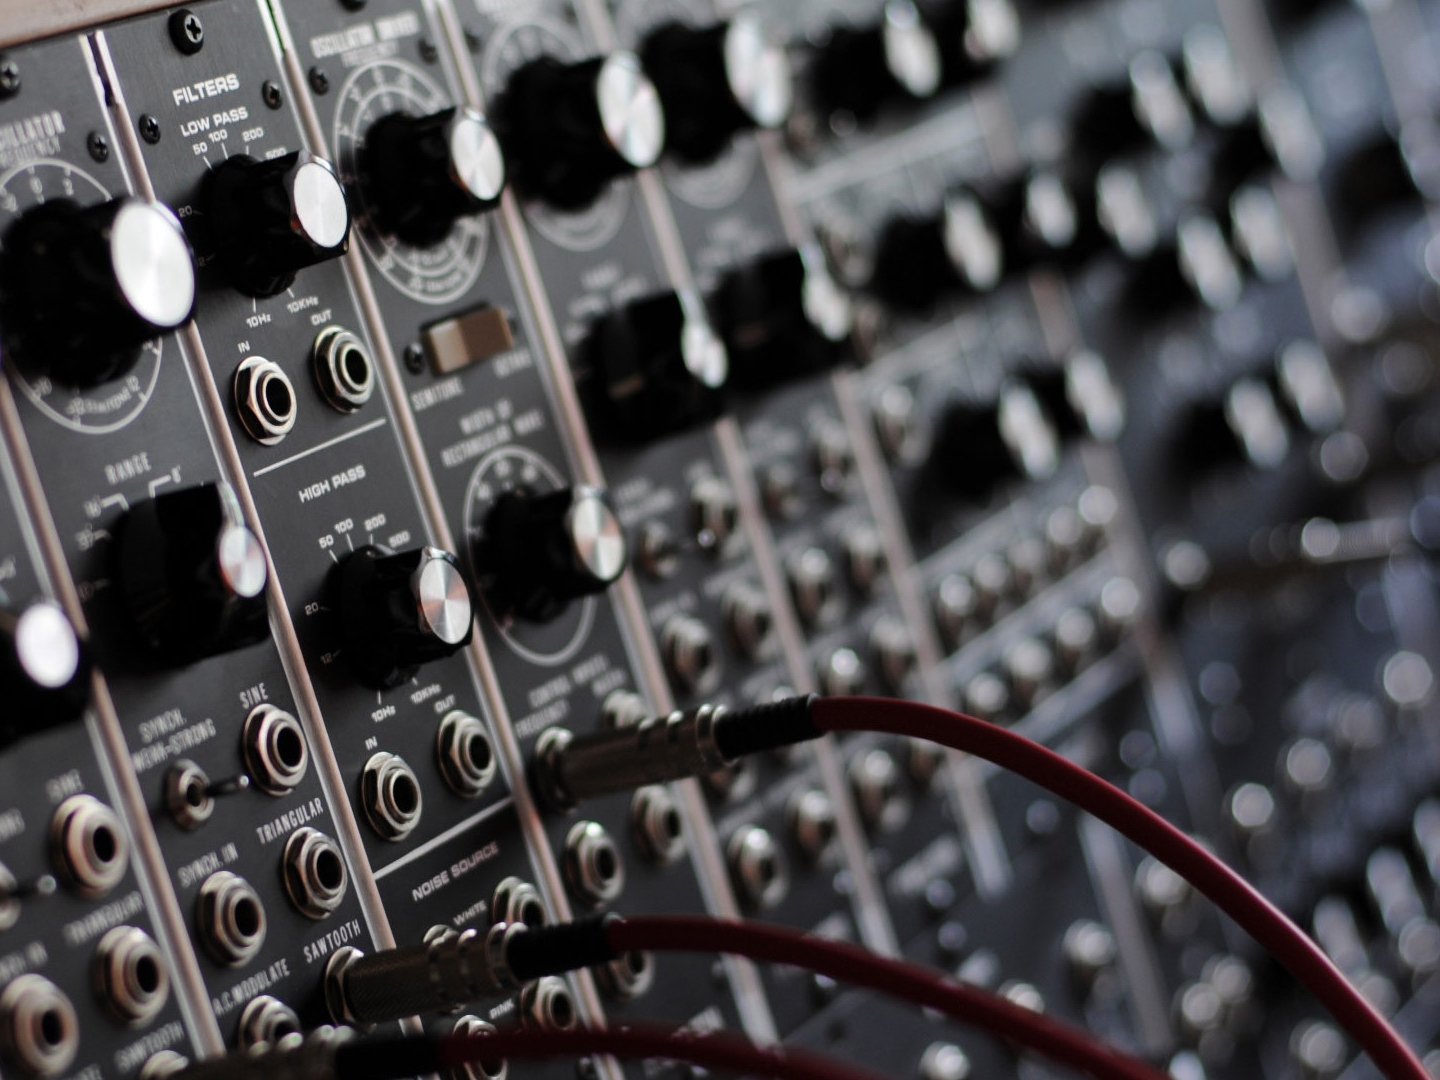 Synthesis - Dive into sound design and program basic synth patches.